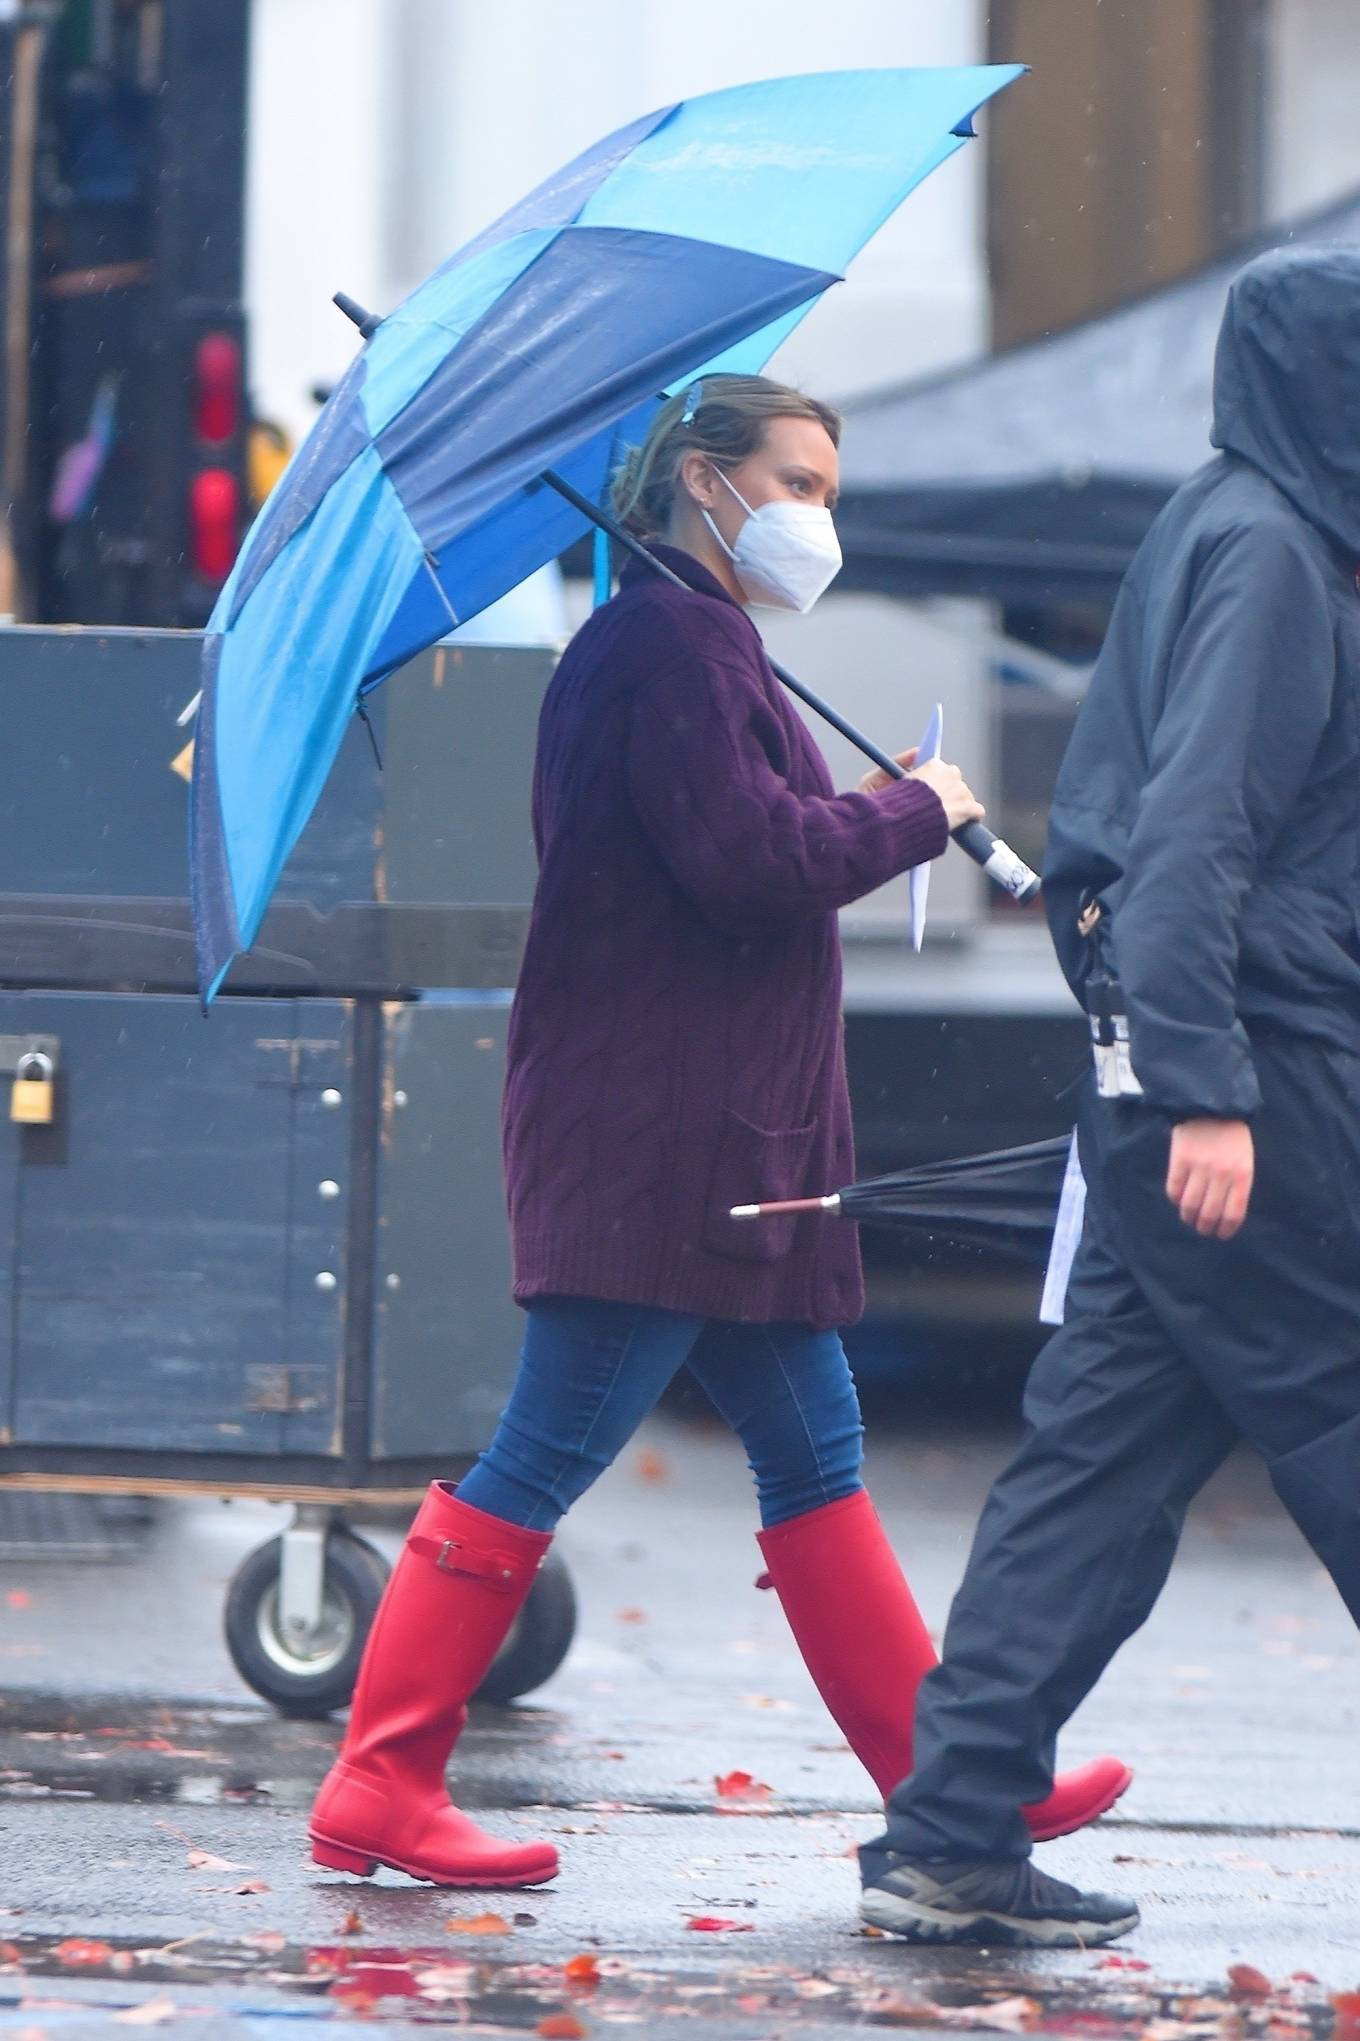 Hilary Duff 2020 : Hilary Duff – Seen on the rain on the set of Younger in Westbury-06